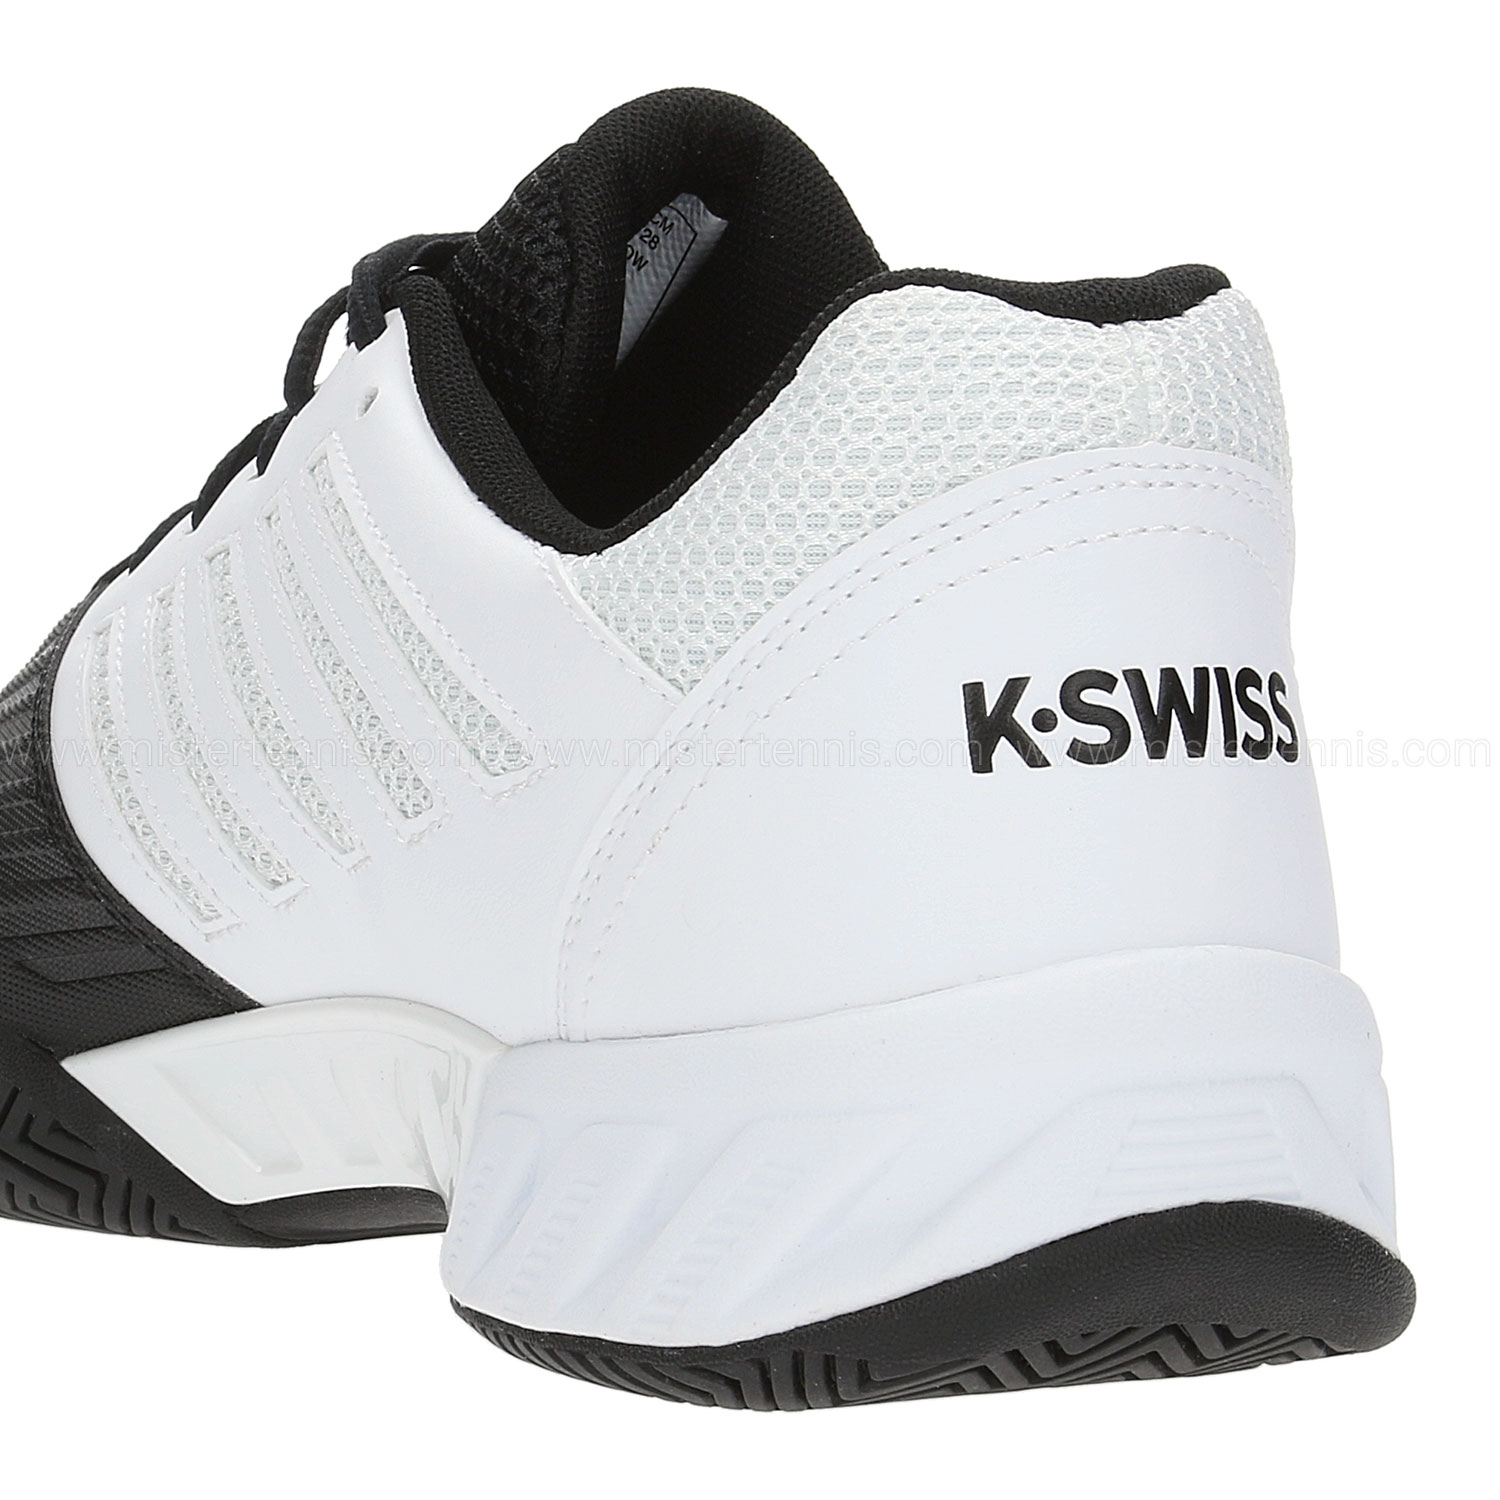 aac9b2f82d2b K-Swiss Bigshot Light 3 Men s Tennis Shoes - White Black